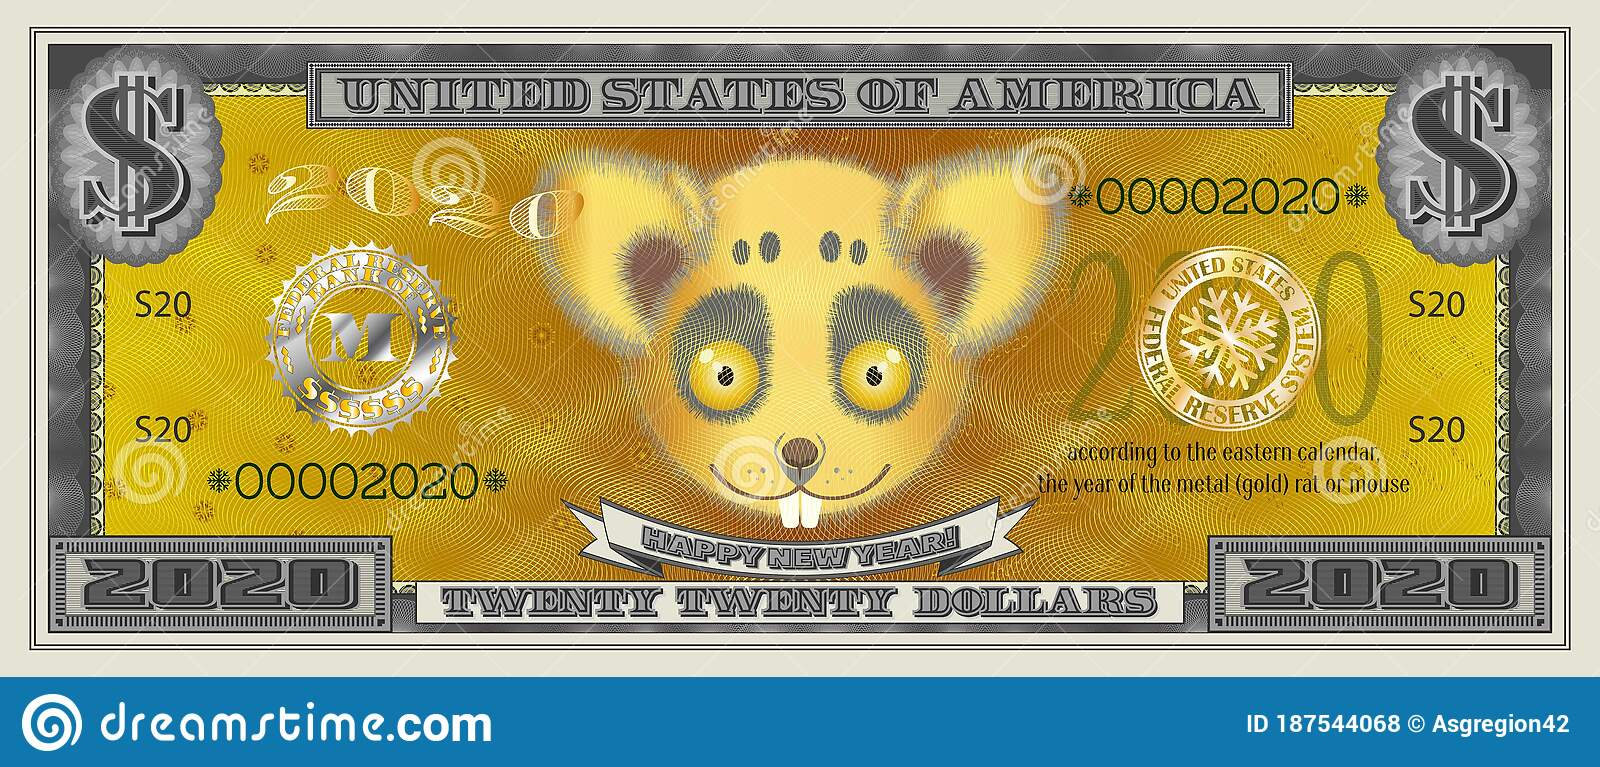 2020 The year of the rat was tested for fluorescent banknotes in paper-cut form